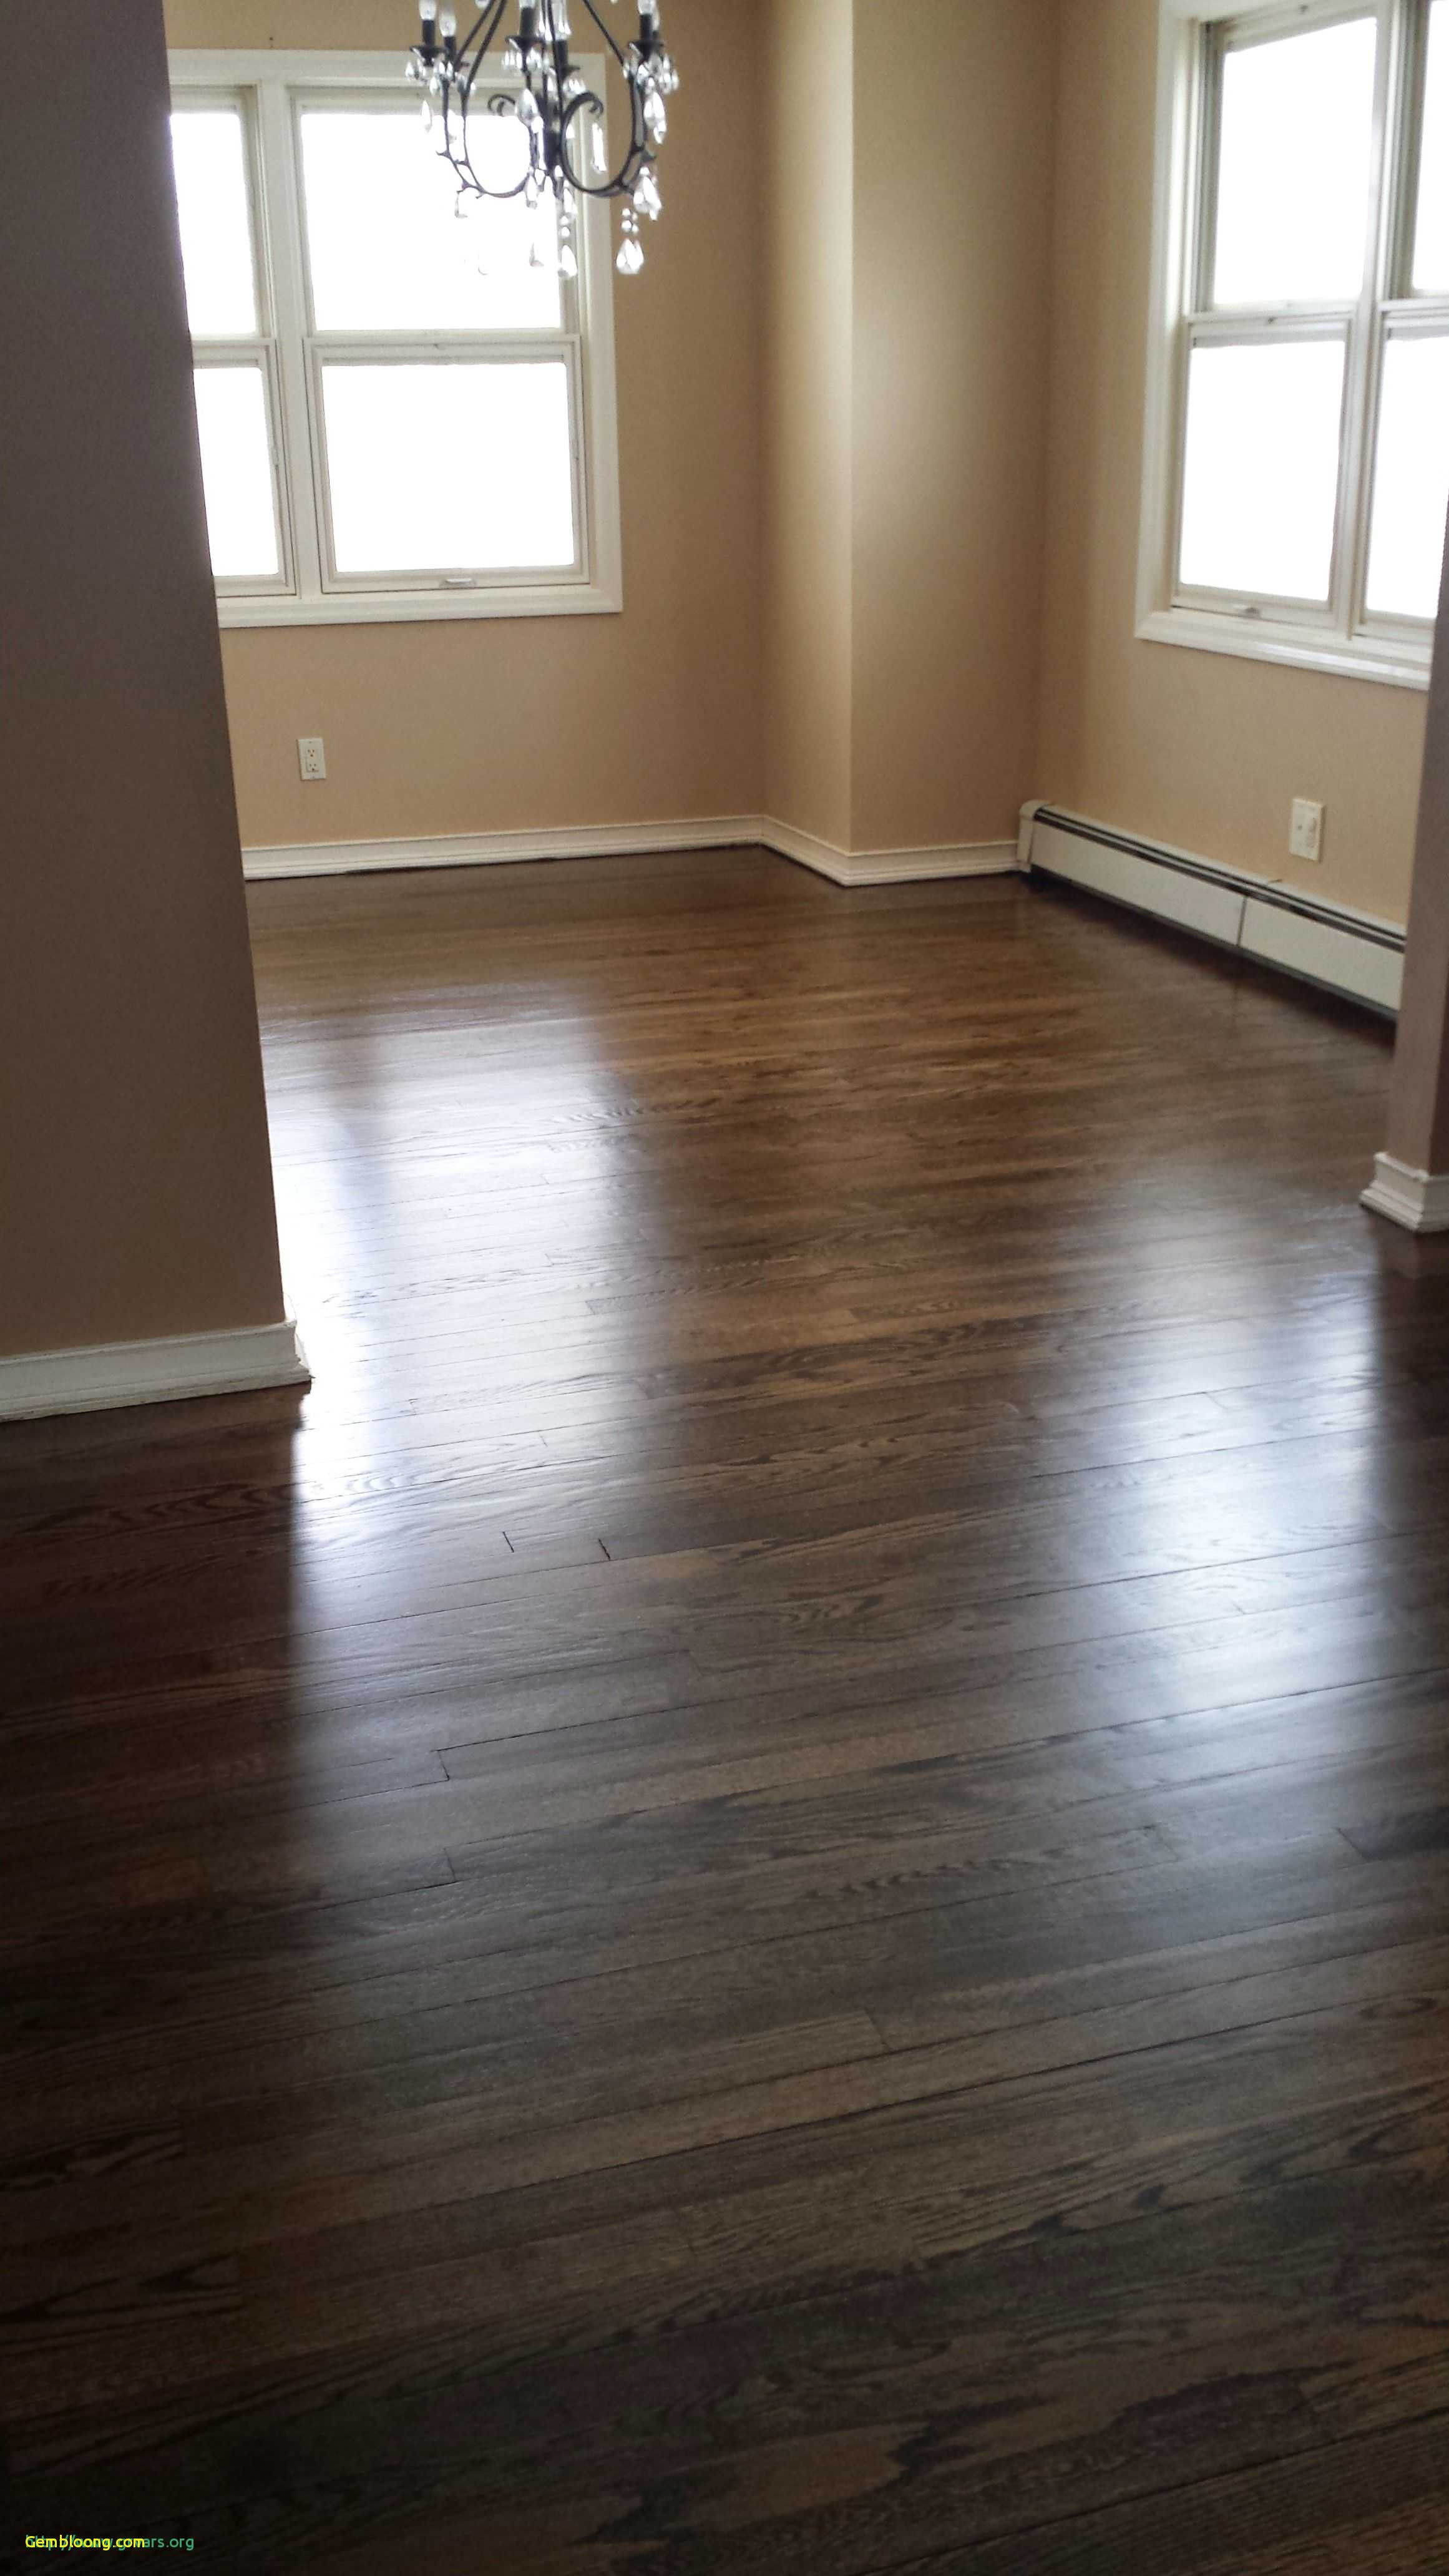 hardwood floor refinishing little rock of 20 beautiful discount flooring near me flooring ideas intended for 20 s of the 20 charmant how to refinish hardwood floors cheap